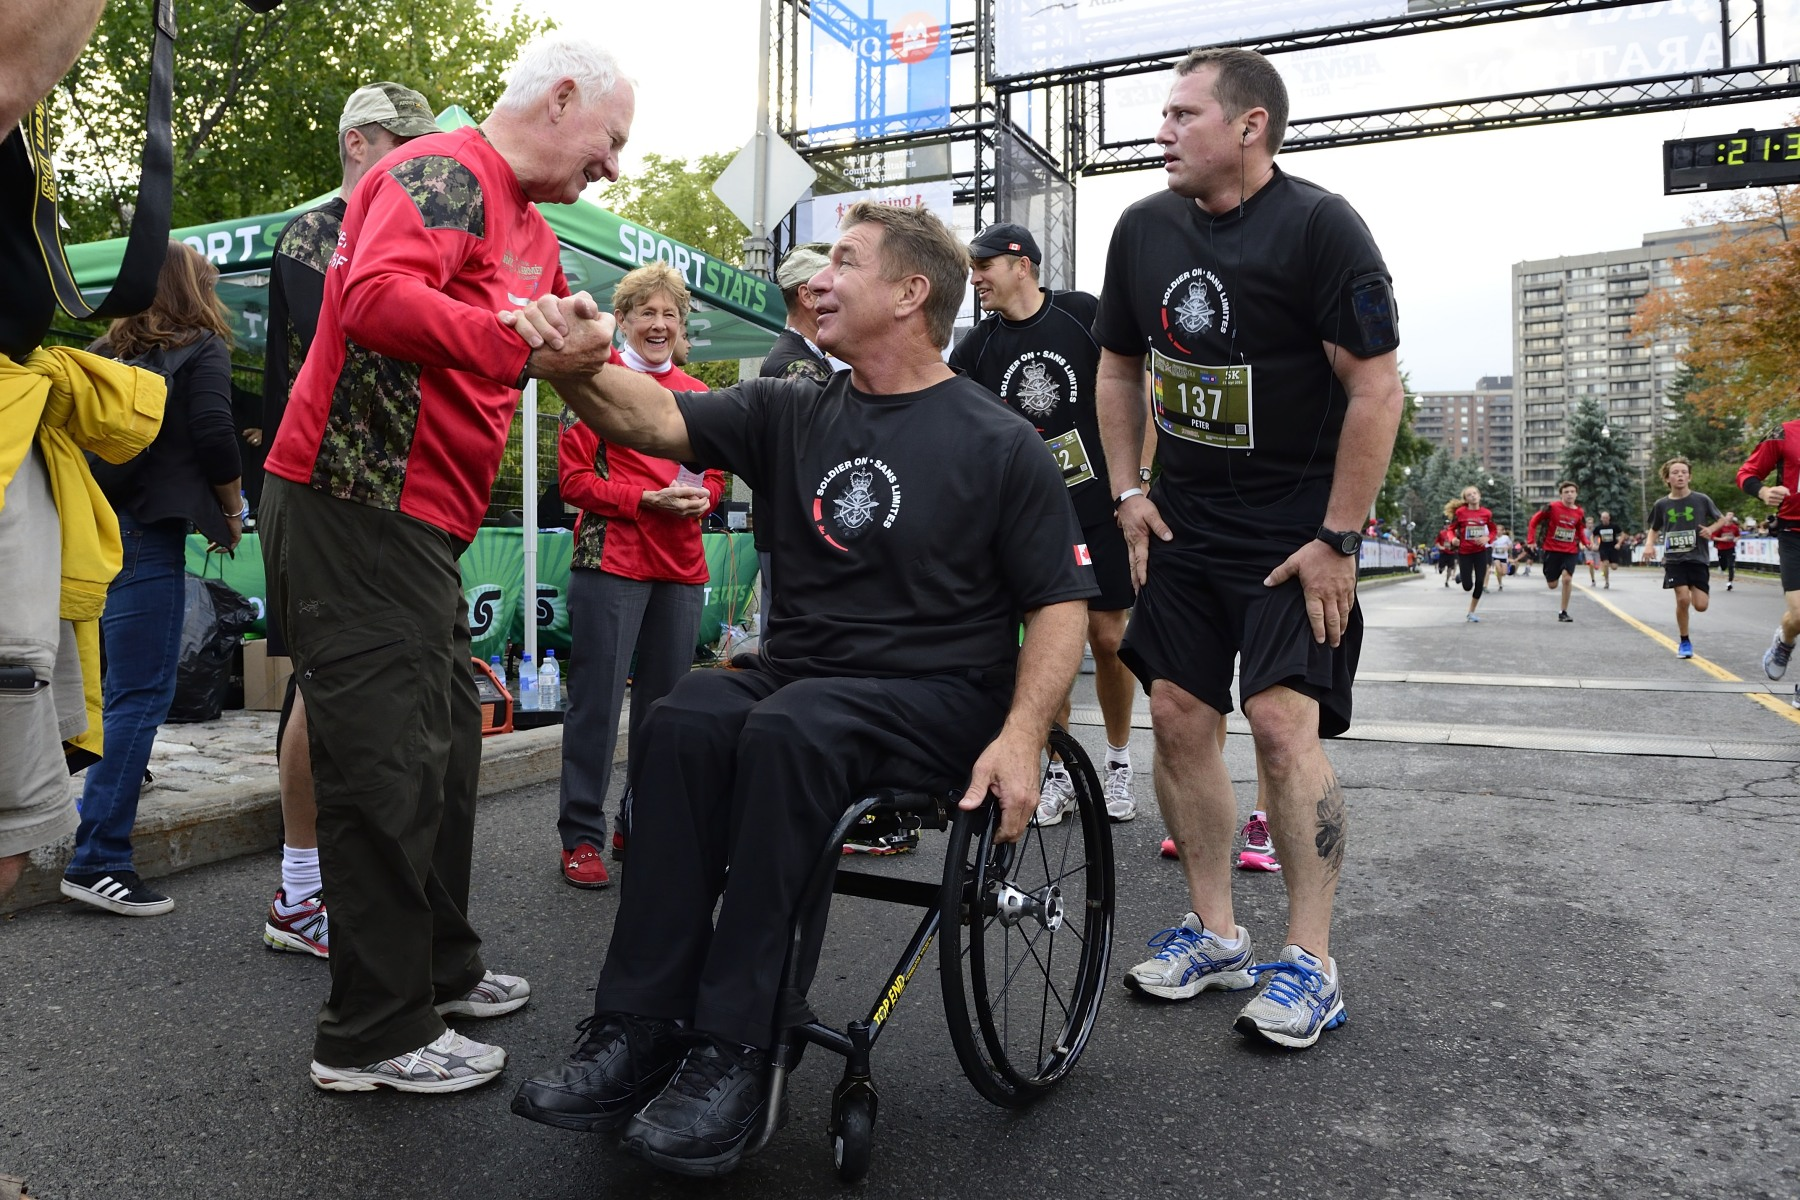 During the event, His Excellency met with Honorary Colonel Rick Hansen, who participated in the 5-kilometre race with members of Solider On.